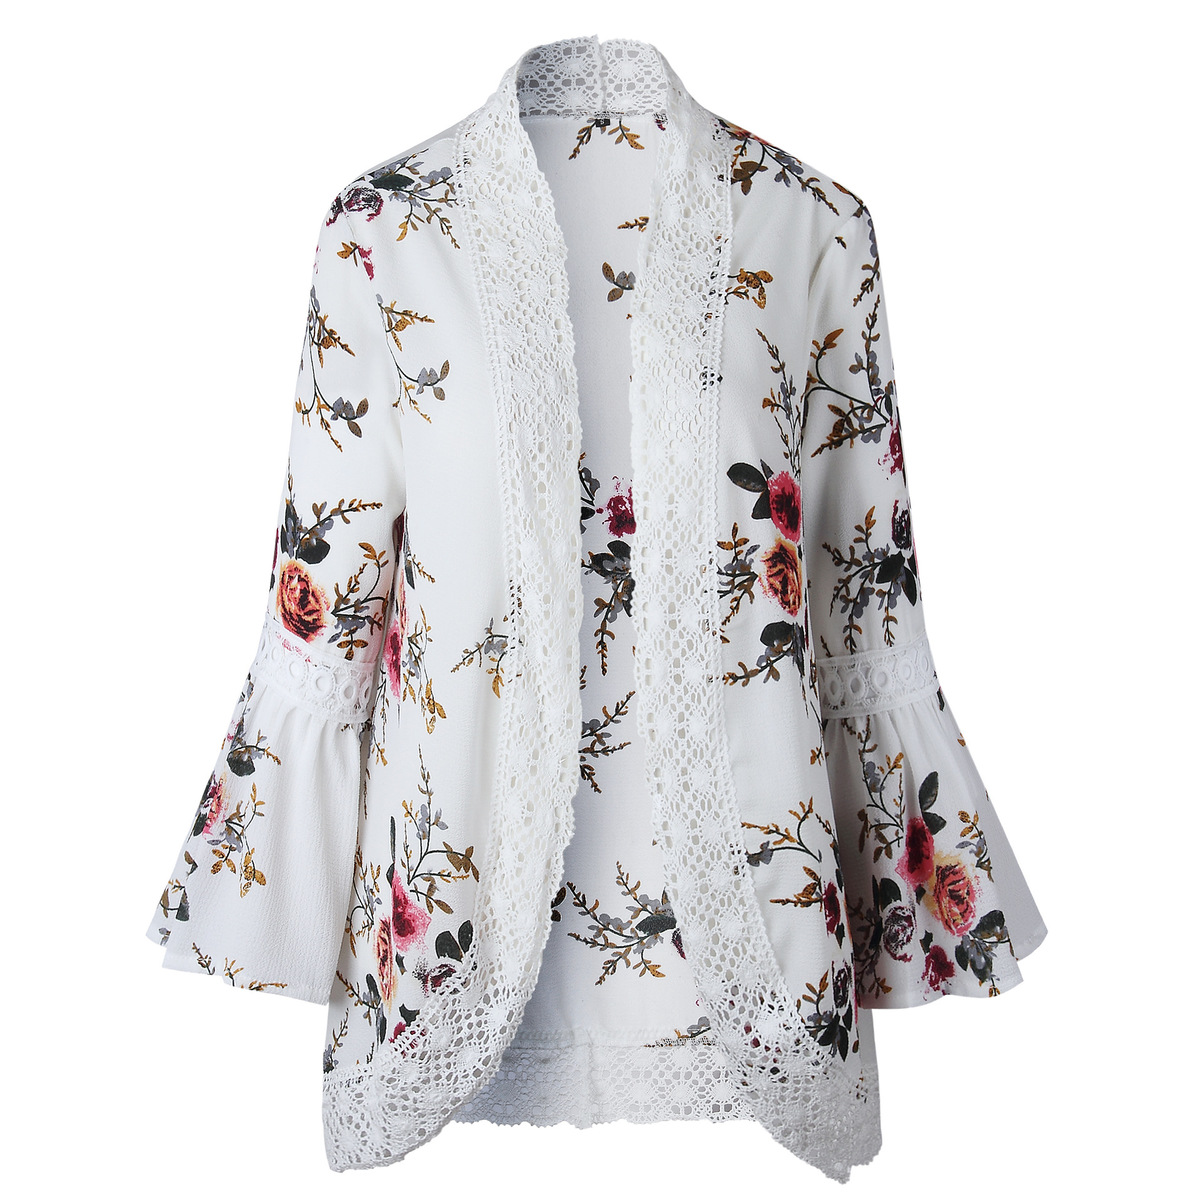 HTB1ANyPEf5TBuNjSspcq6znGFXaR Women Plus Size Loose Casual Basic Jackets Female 2018 Autumn Long Flare Sleeve Floral Print Outwear Coat Open Stitch Clothing